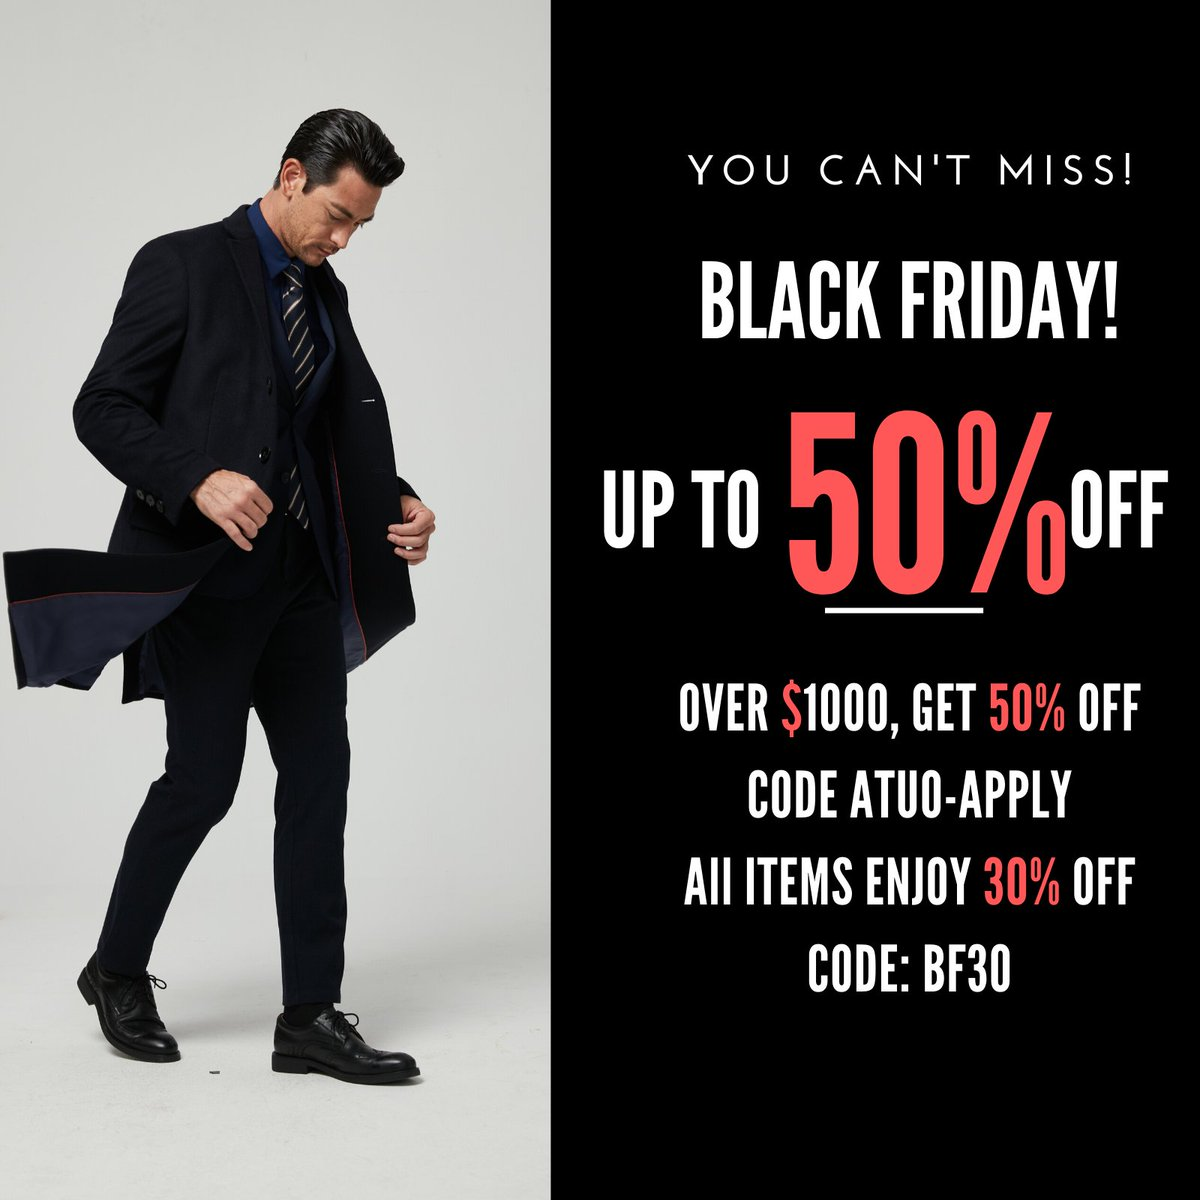 MatchU Black Friday Sale Starts Now!#mtm #match #casualoutfits #casualsuit #suitandtie #menstyleguide #londonfashionblogger #londonstreetstyle #welldressedmen #mensuitstyle #suited #suitedandbooted #ootd #photooftheday #instagood #menswear #matchutailor